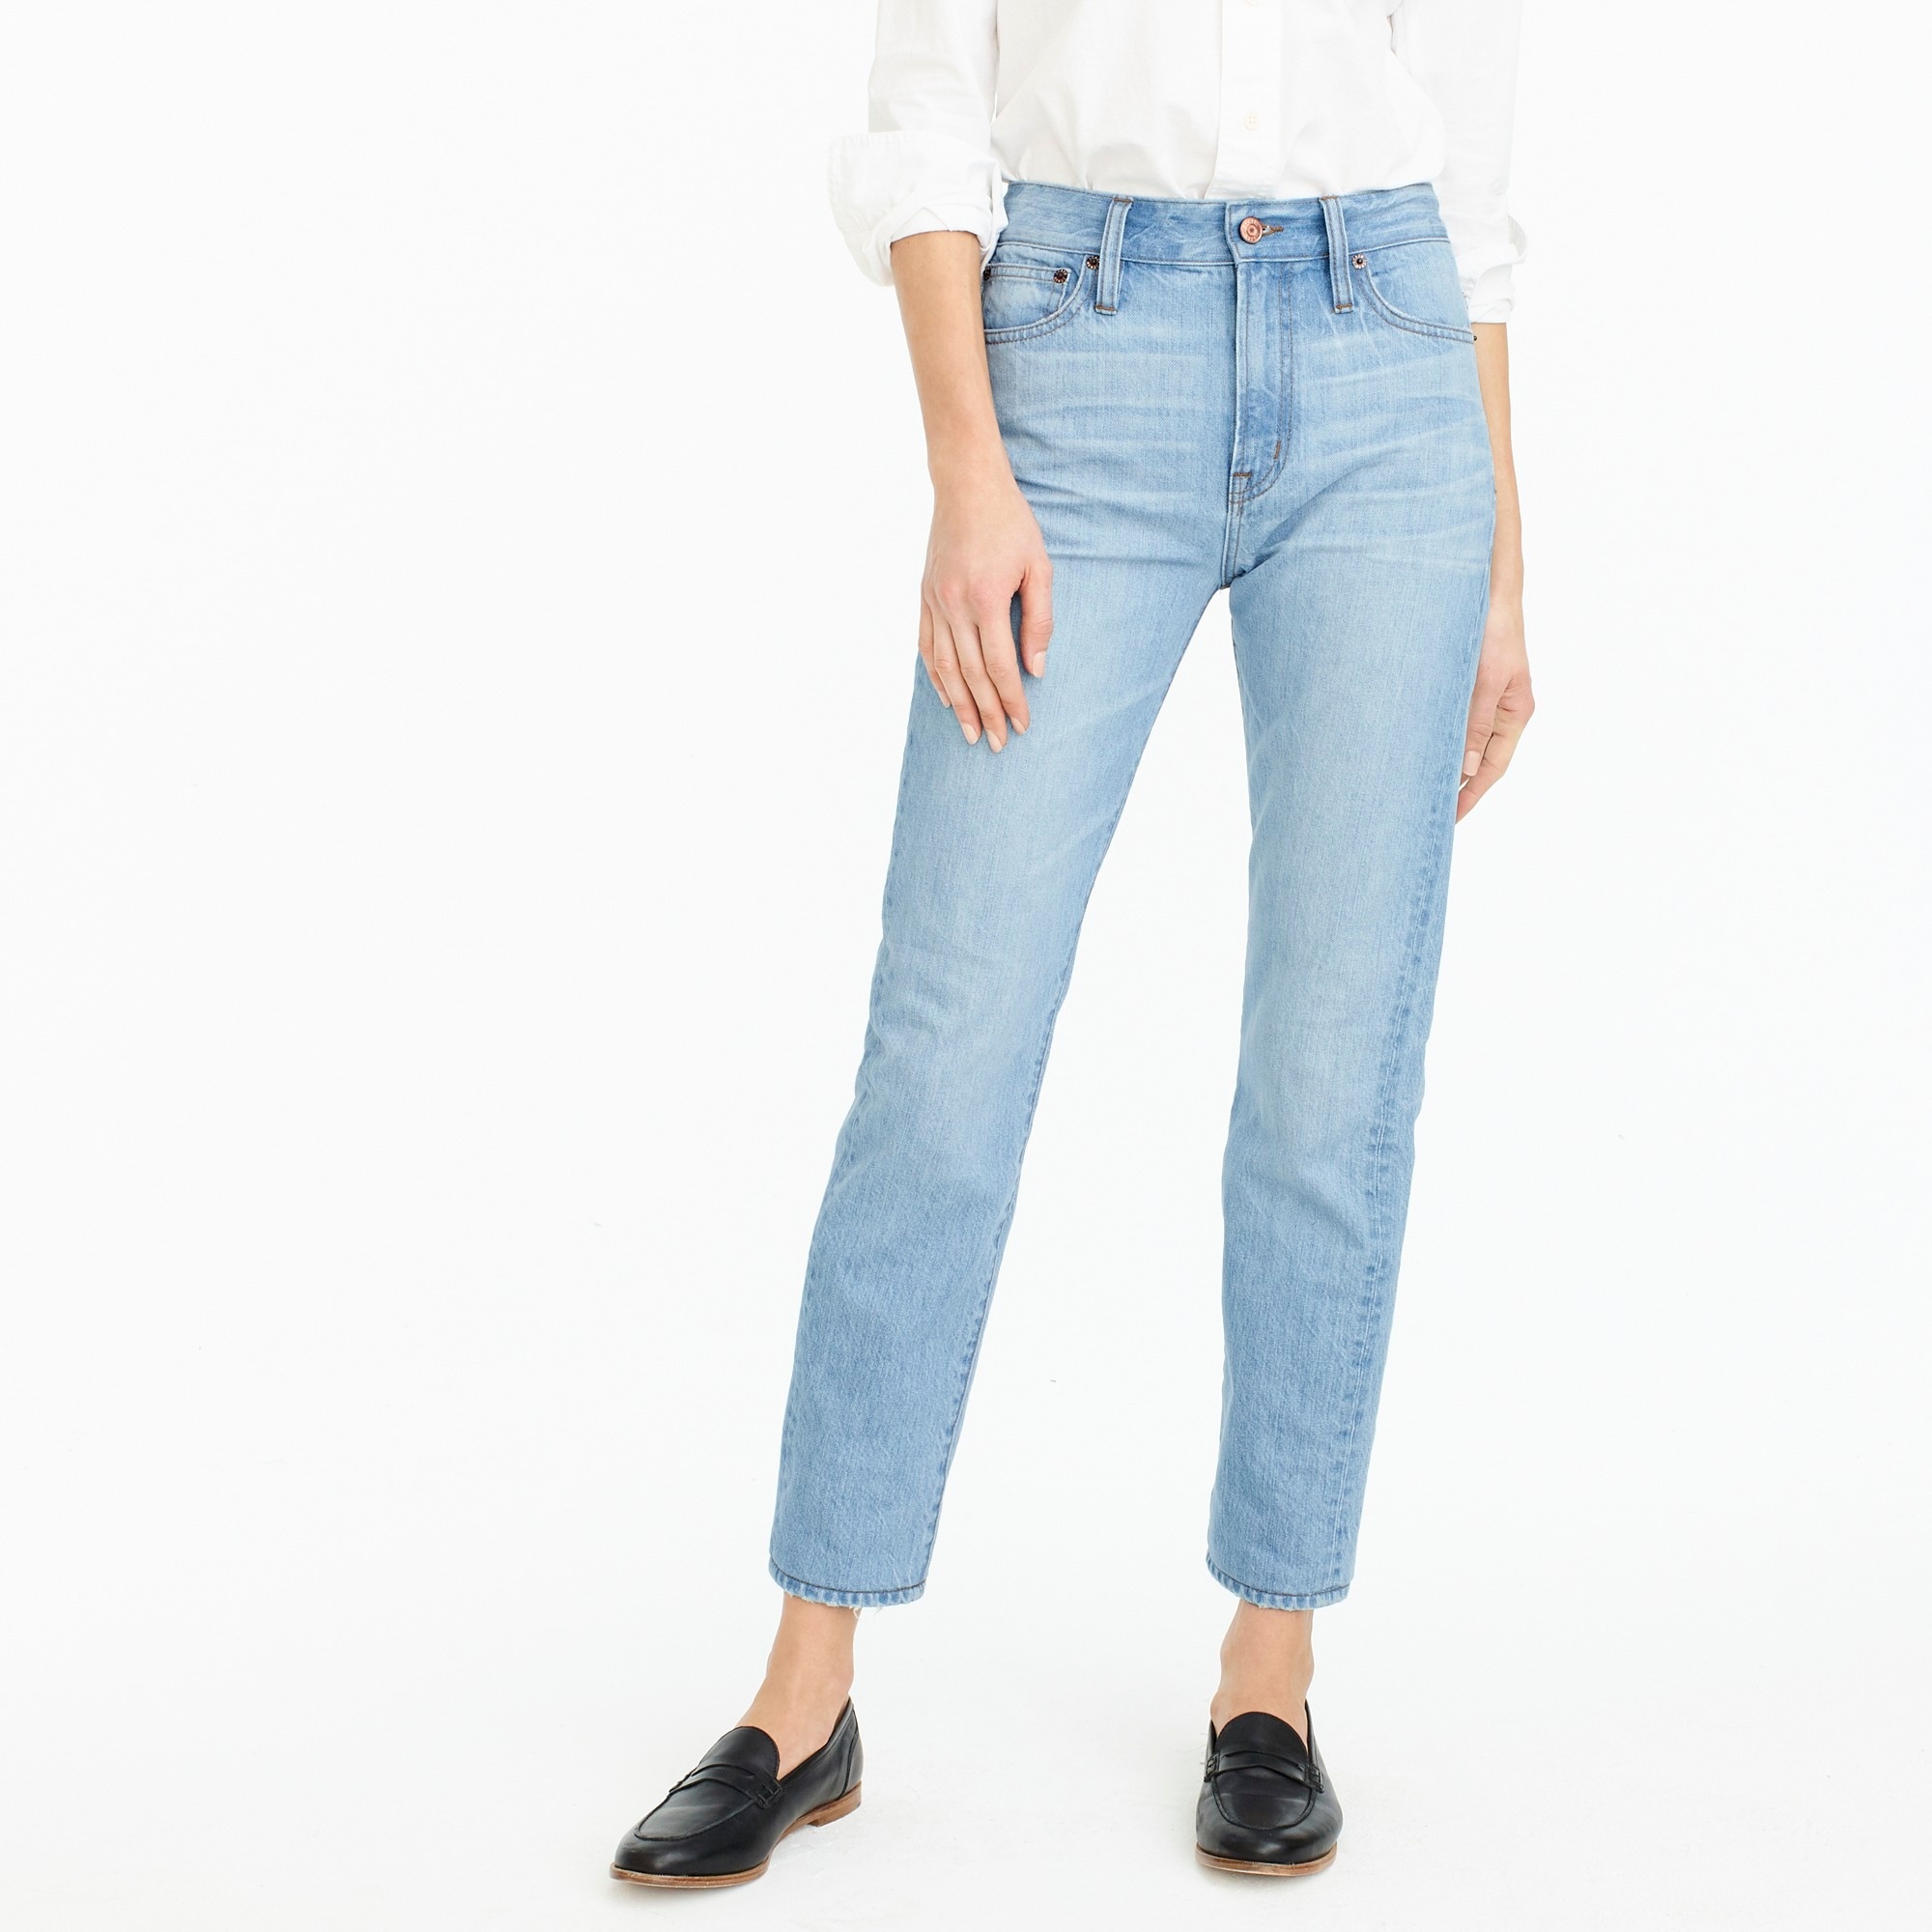 Petite Point Sur high-rise retro straight jean women tall c